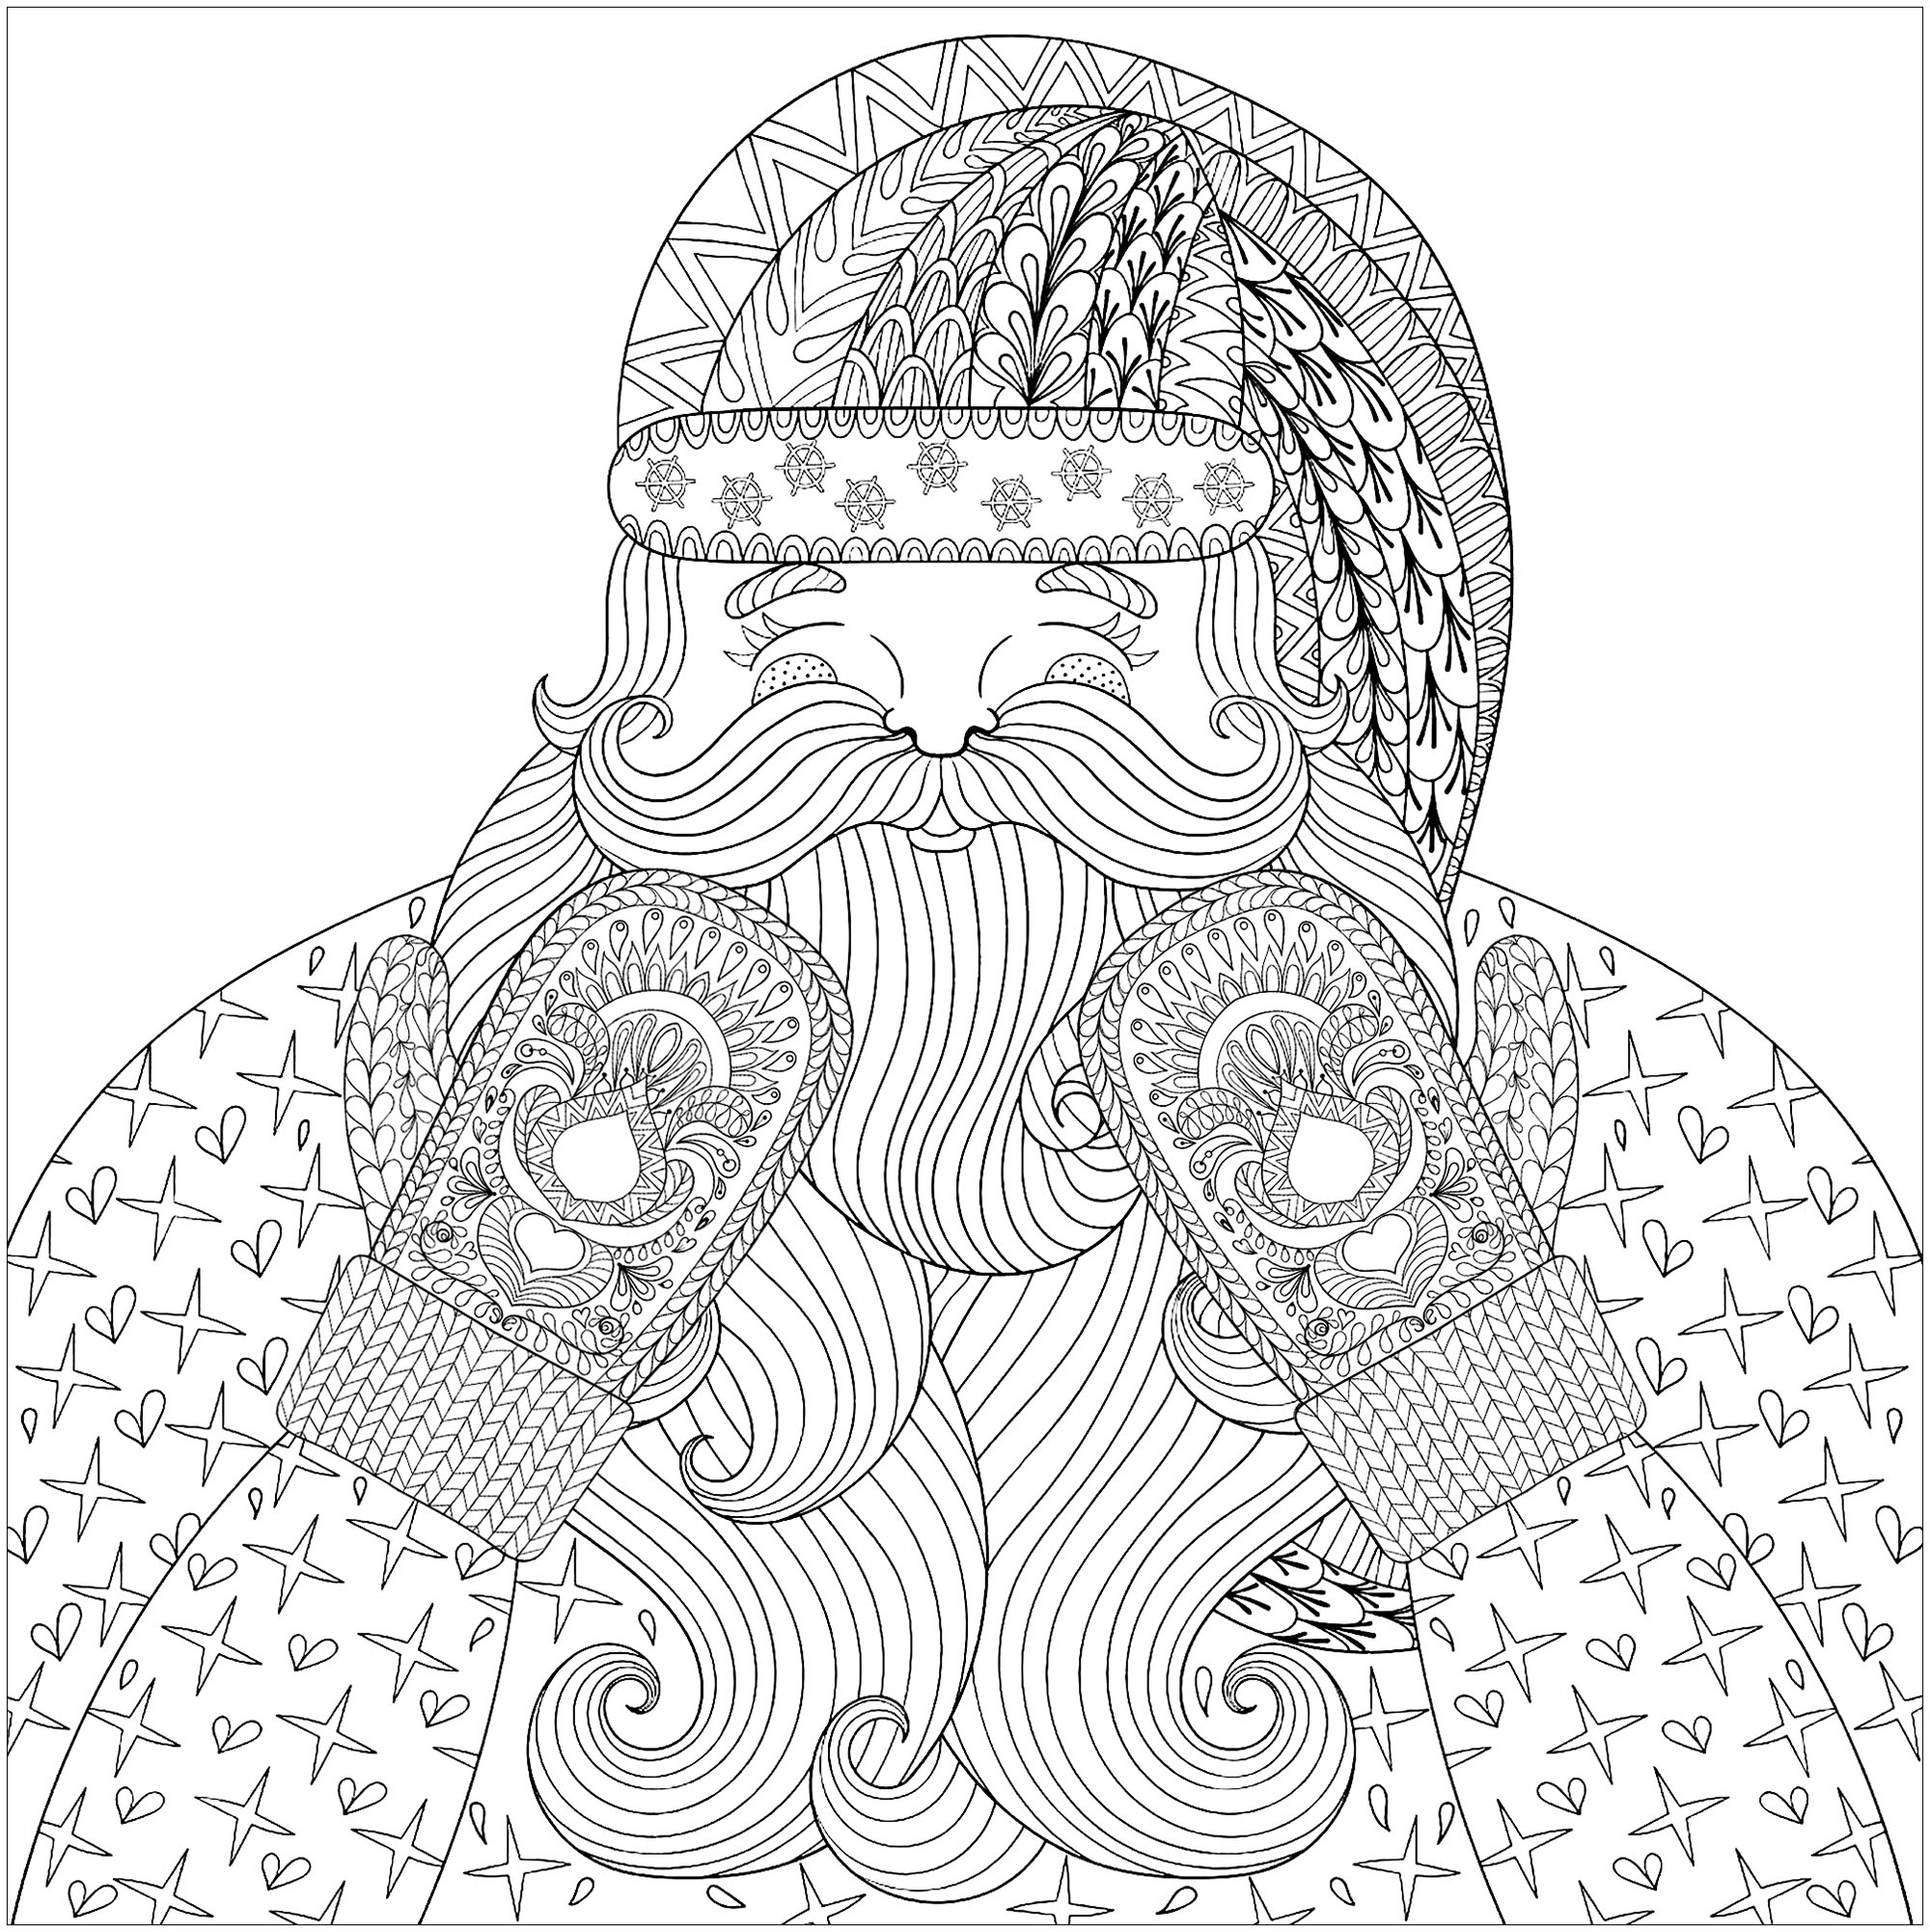 color this smiling and happy santa claus with knitted mittens with patterns designed in zentangle